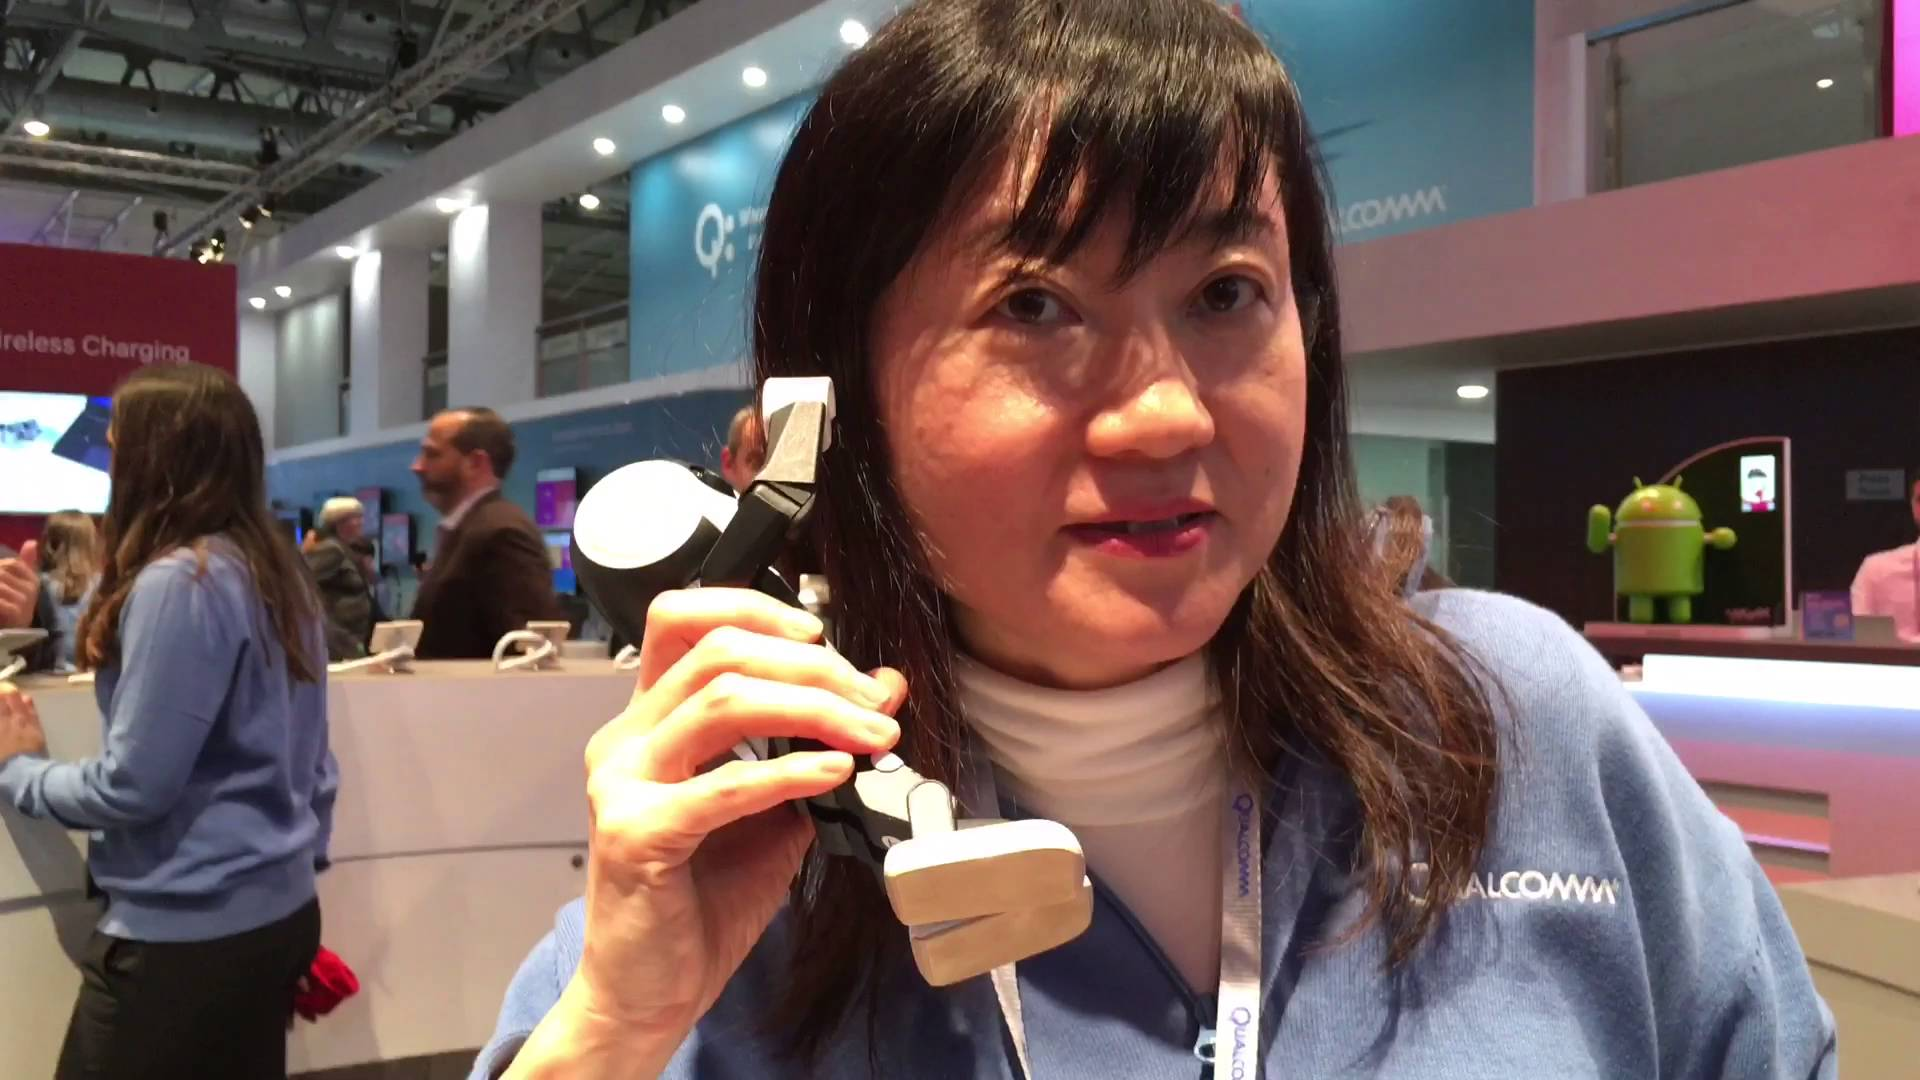 RoBoHon Robot Phone: Just Because Adorable